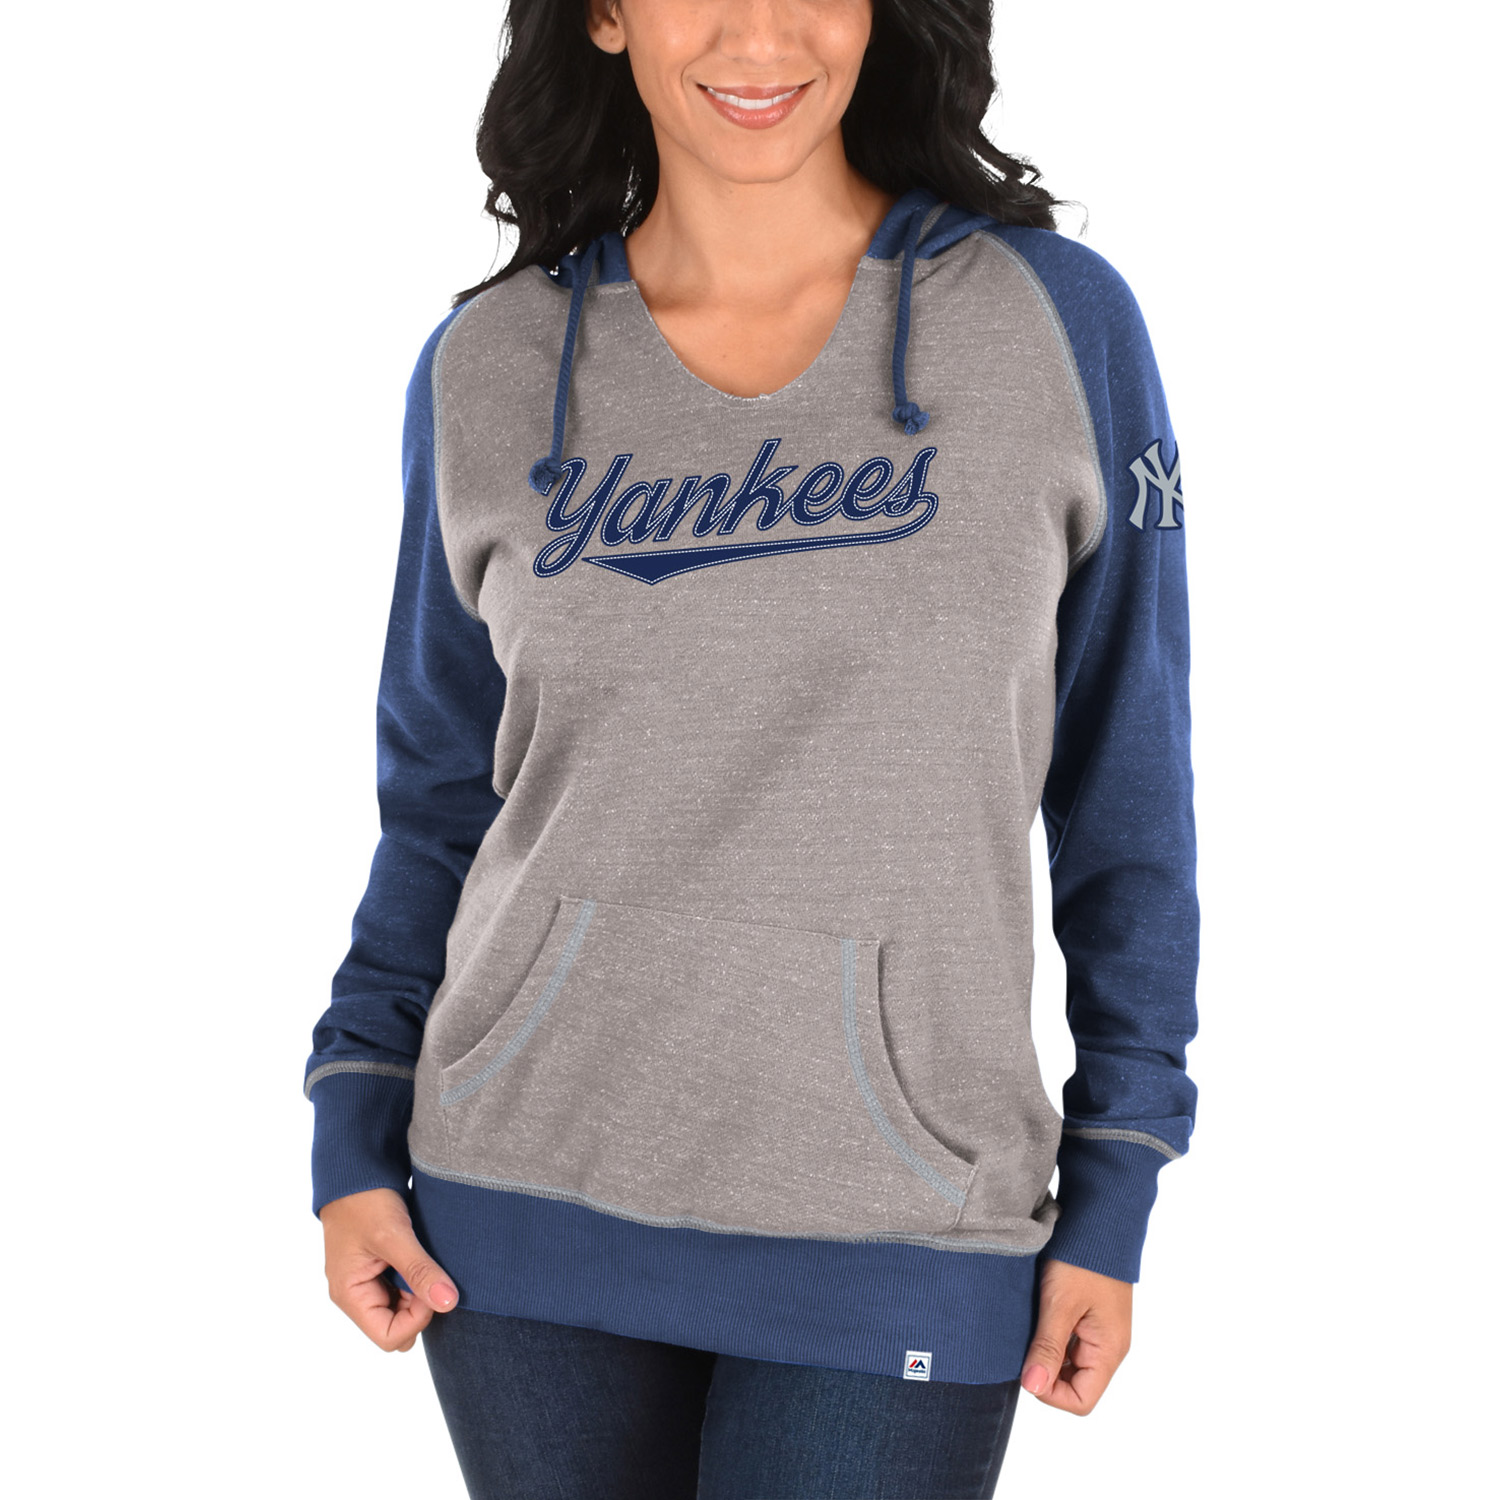 New York Yankees Majestic Women's Absolute Confidence Hoodie - Gray